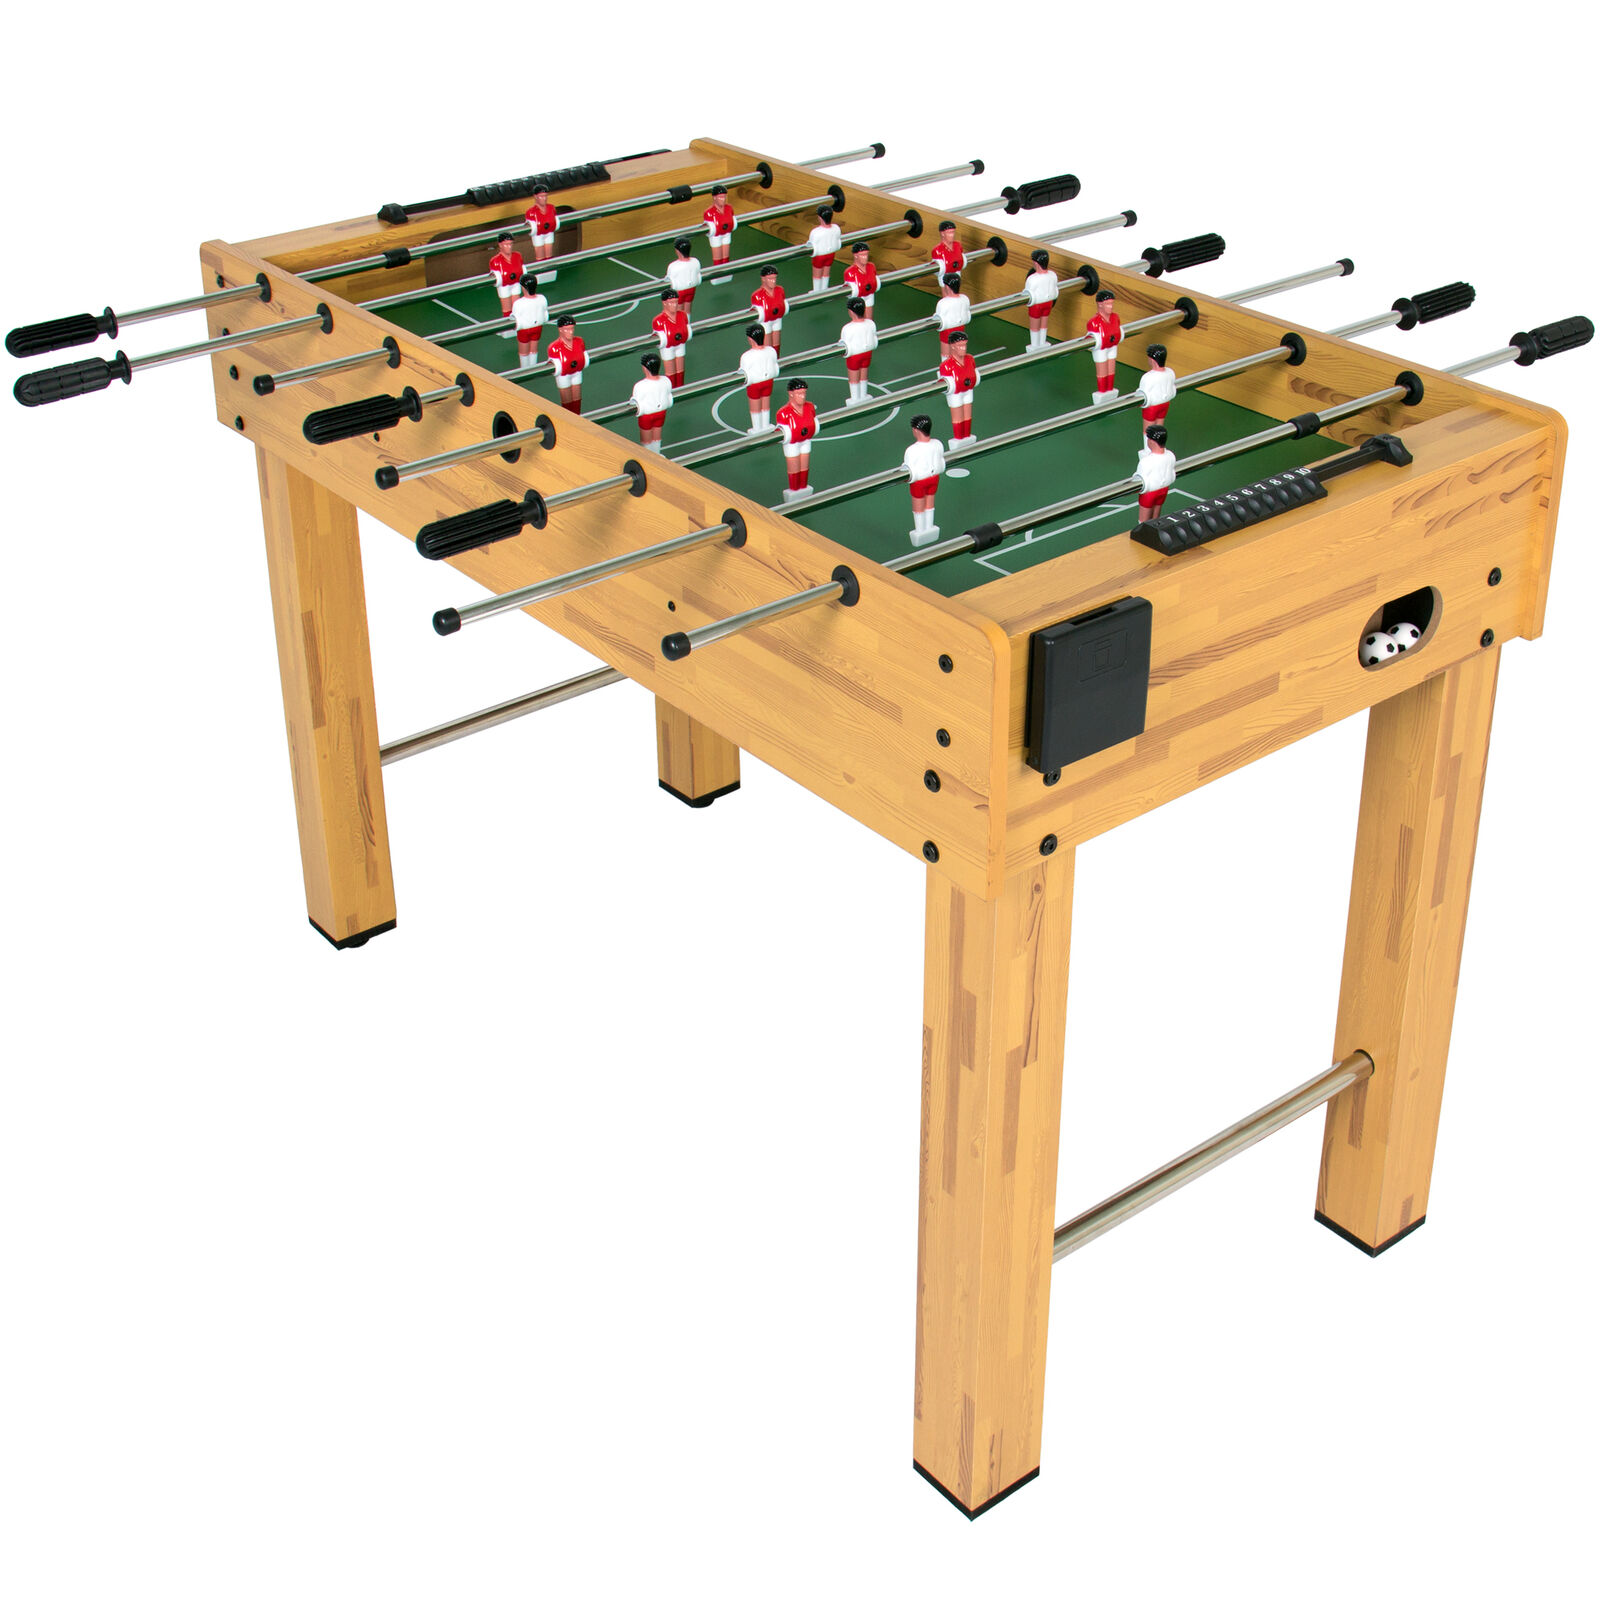 EastPoint Sports Newcastle Foosball Table Inch East Point - Newcastle foosball table